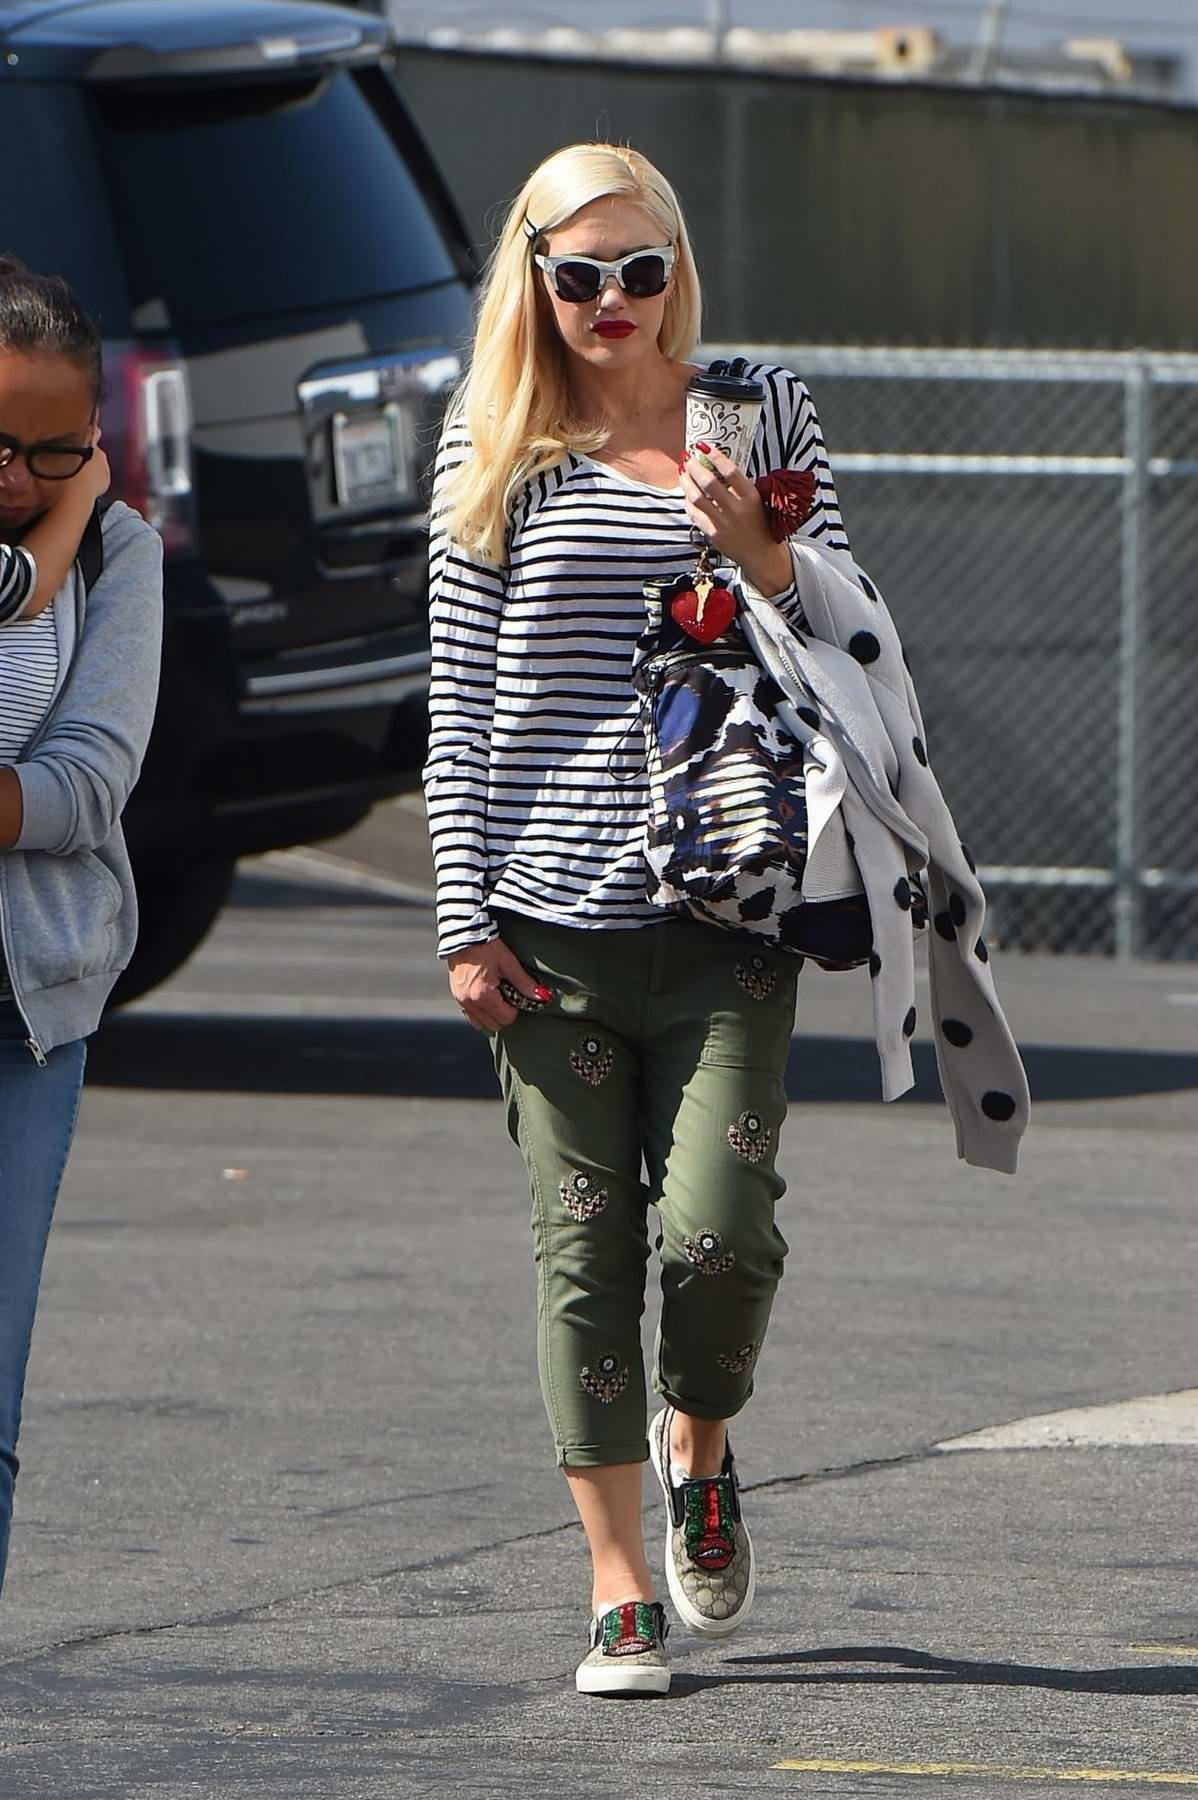 Gwen Stefani at Sky Zone Sports Park in Los Angeles